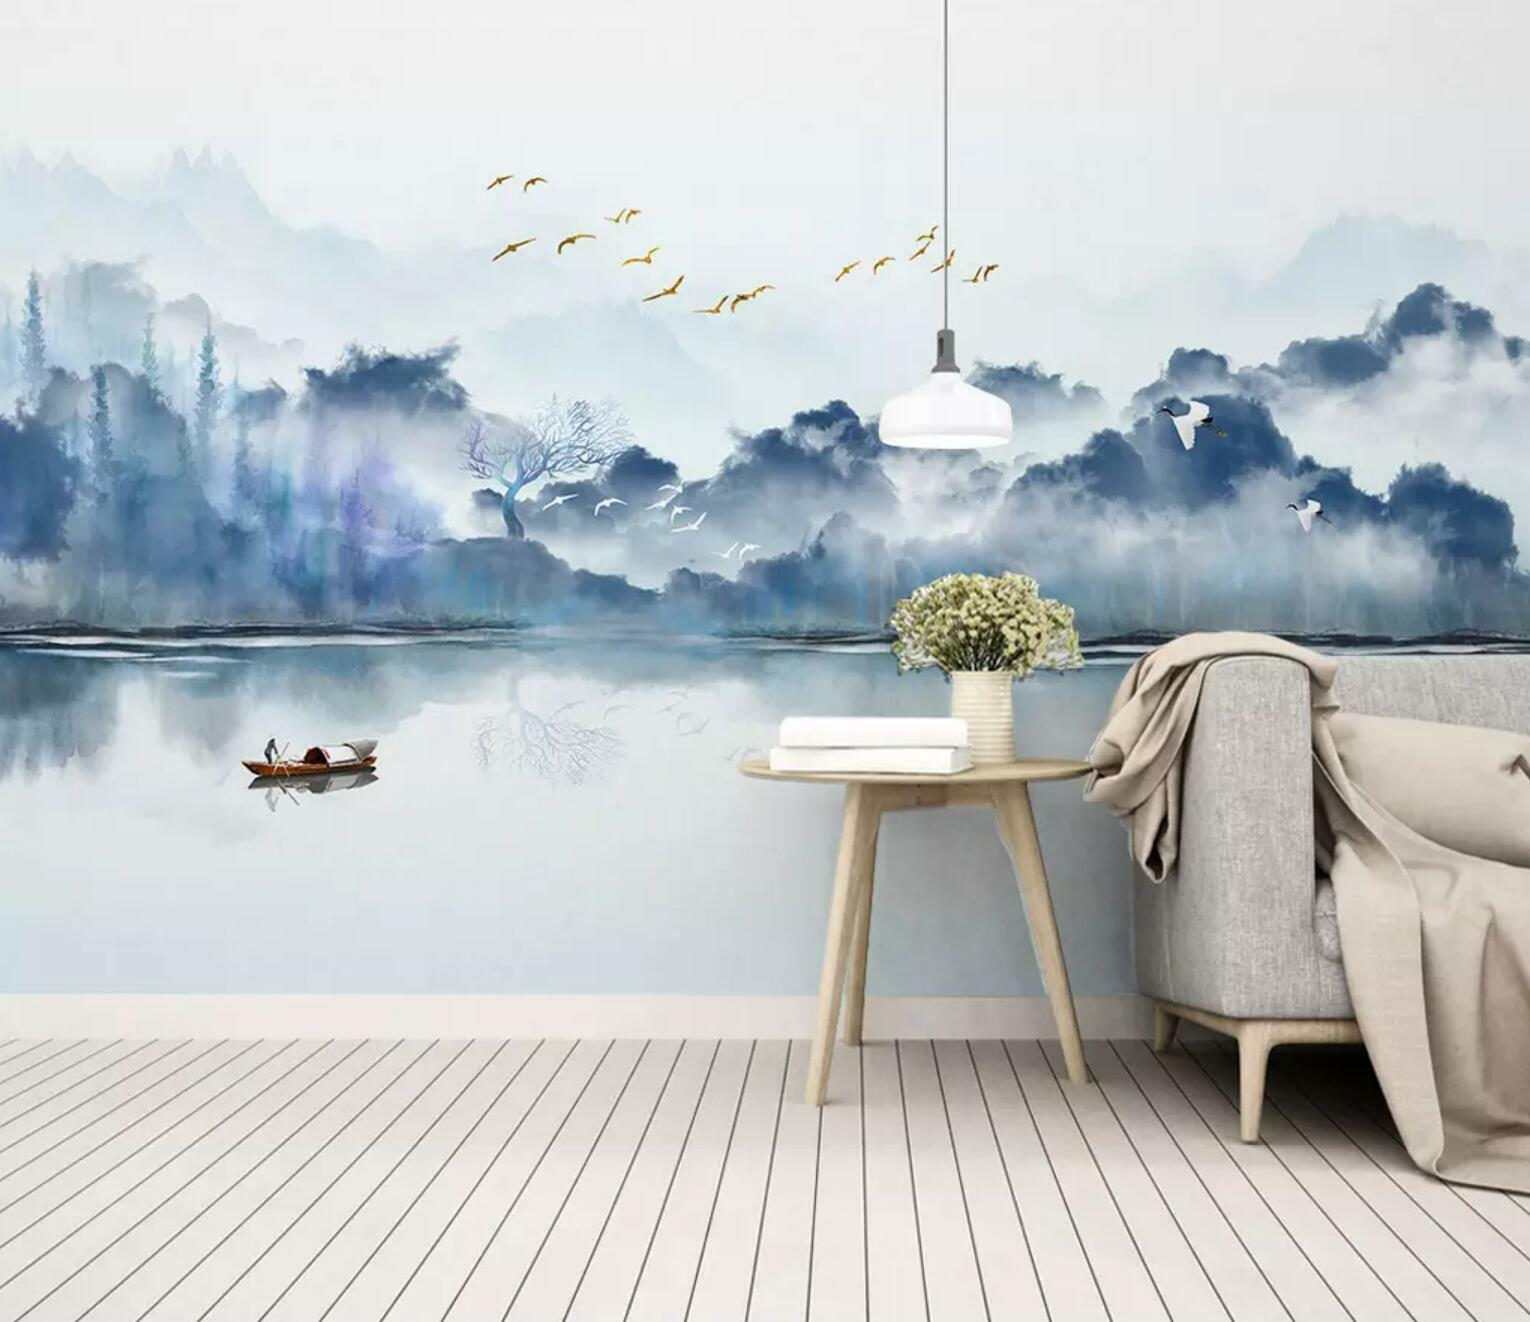 3D Mountain River 78 Wall Paper Exclusive MXY Wallpaper Mural Decal Indoor Wall